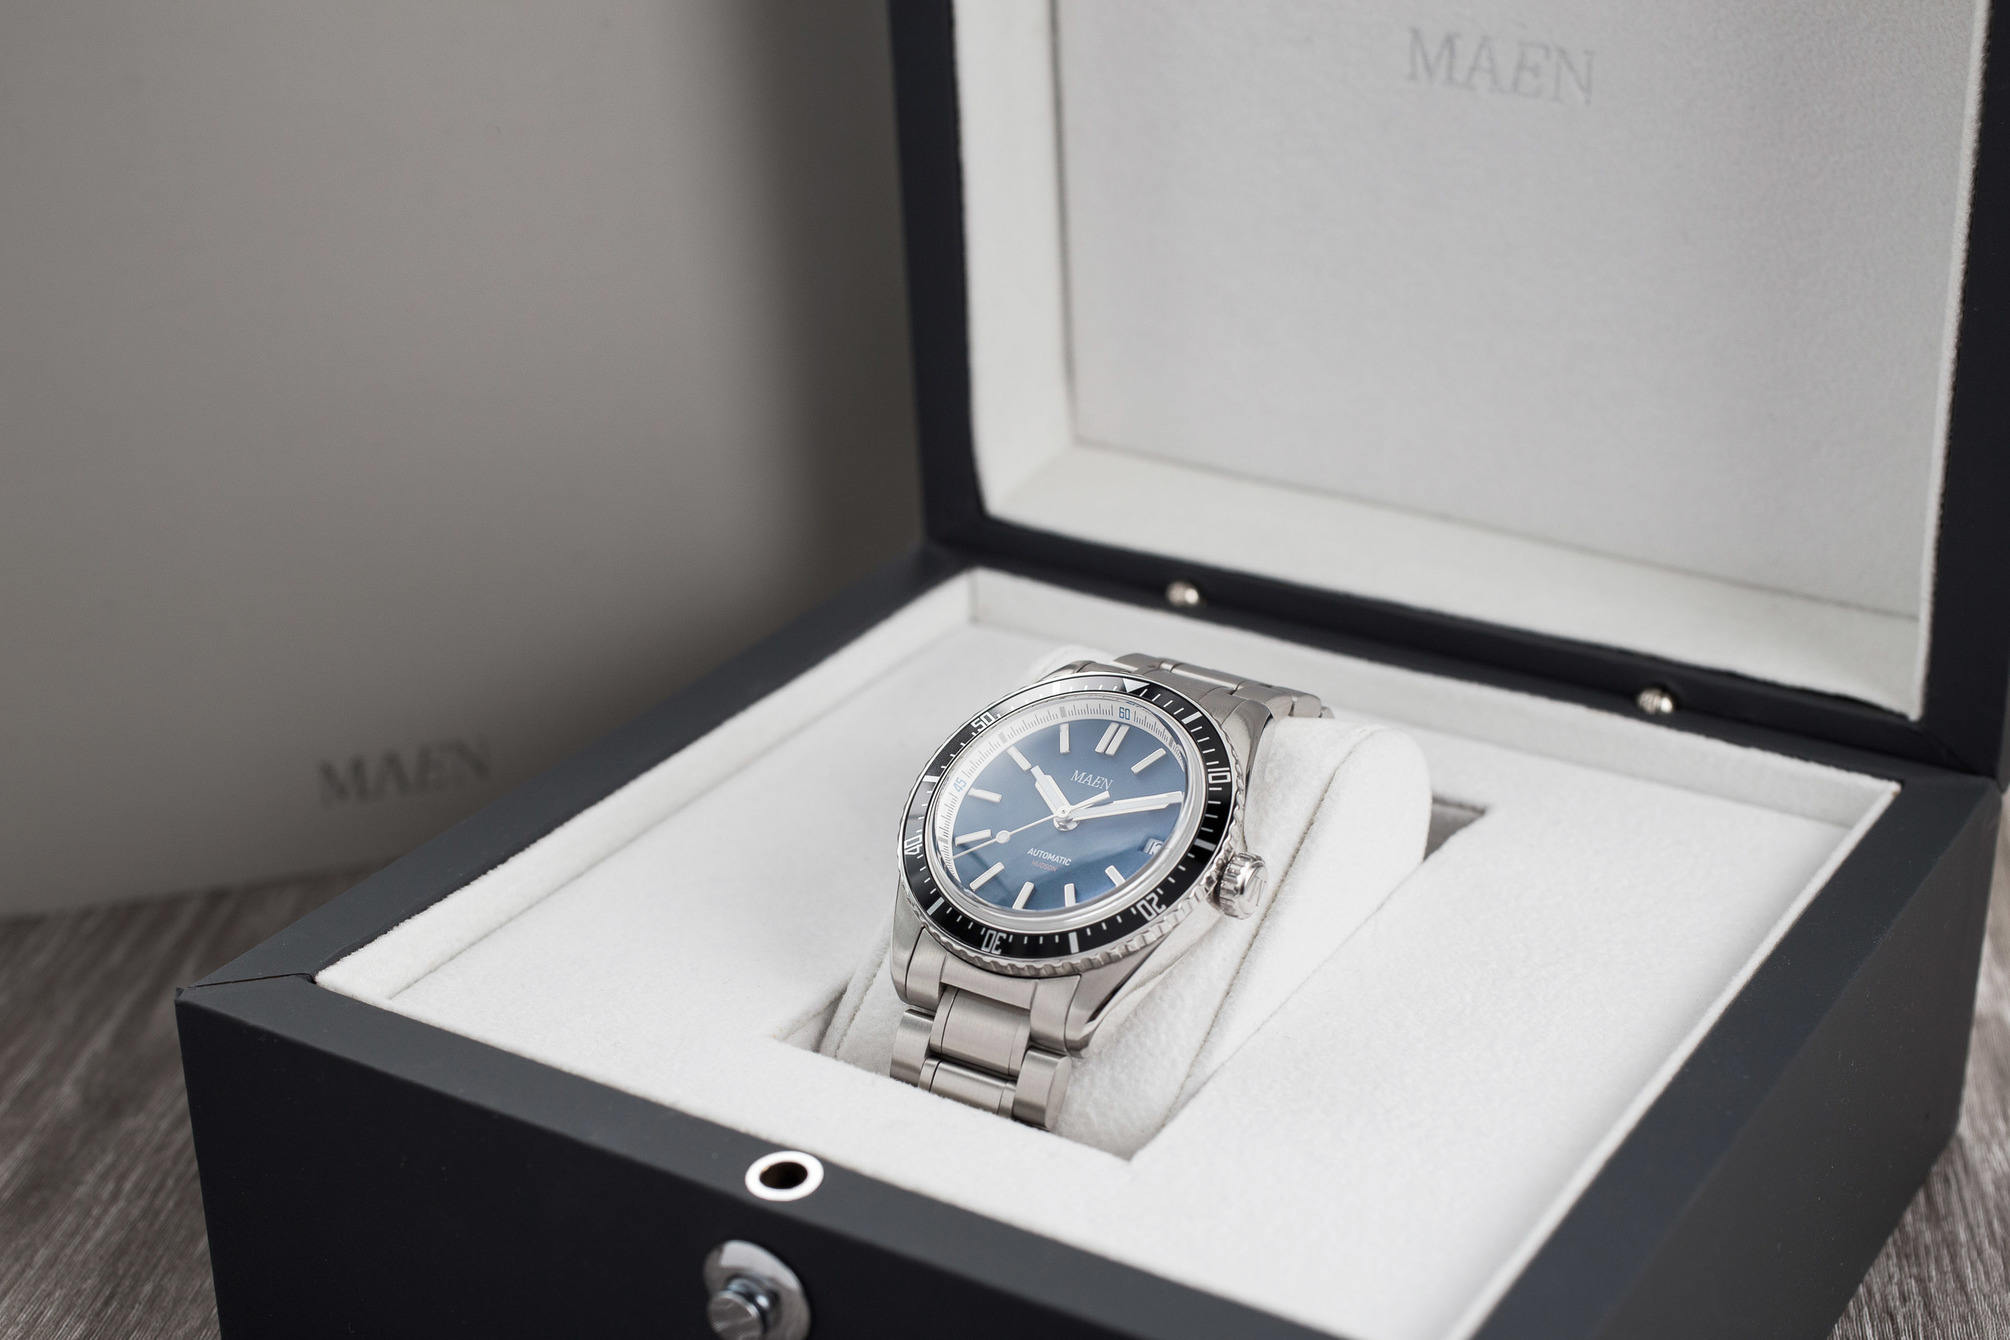 Maen Hudson Automatic 38mm in the box